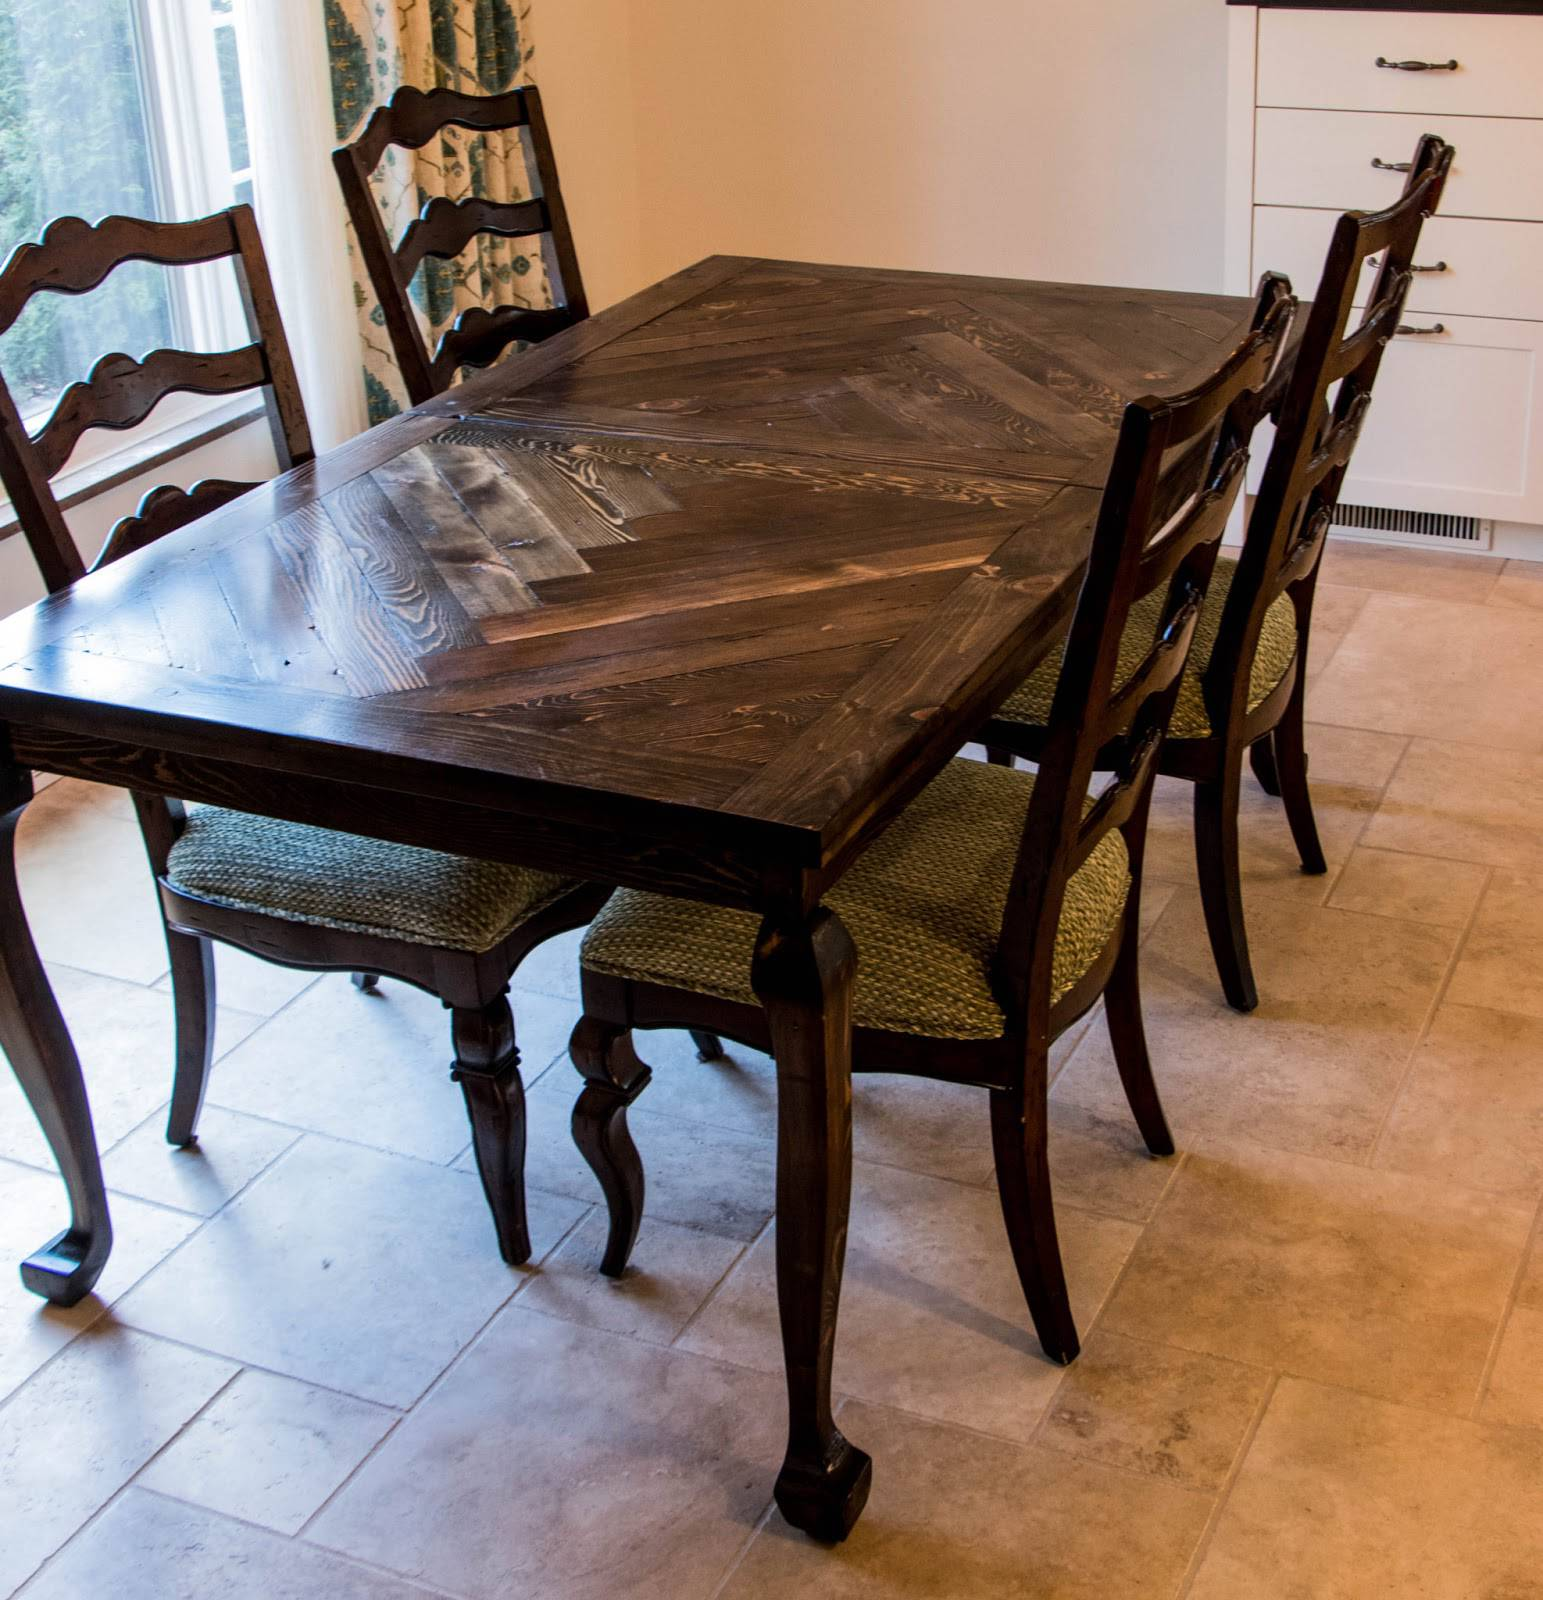 Cabriole Legs - Dining Table Complete 3